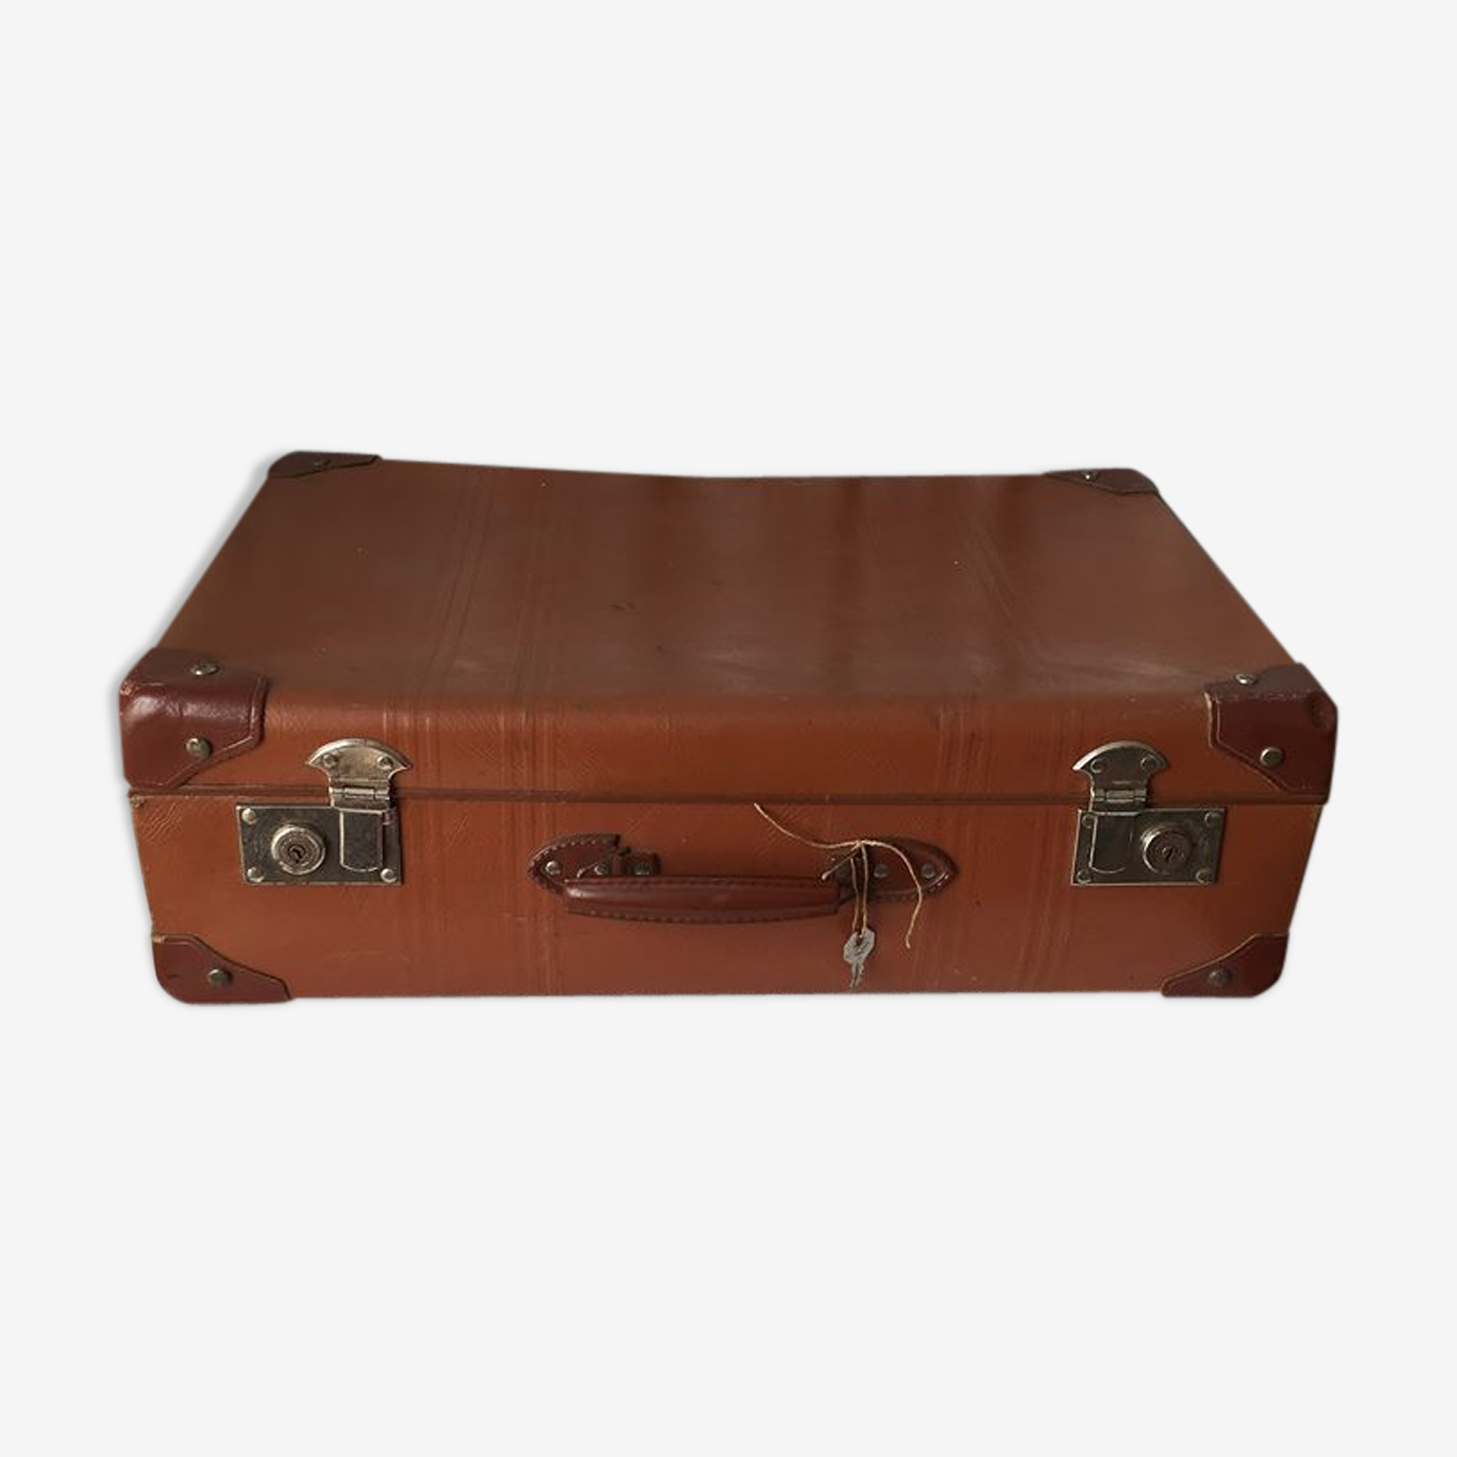 Old brown suitcase.